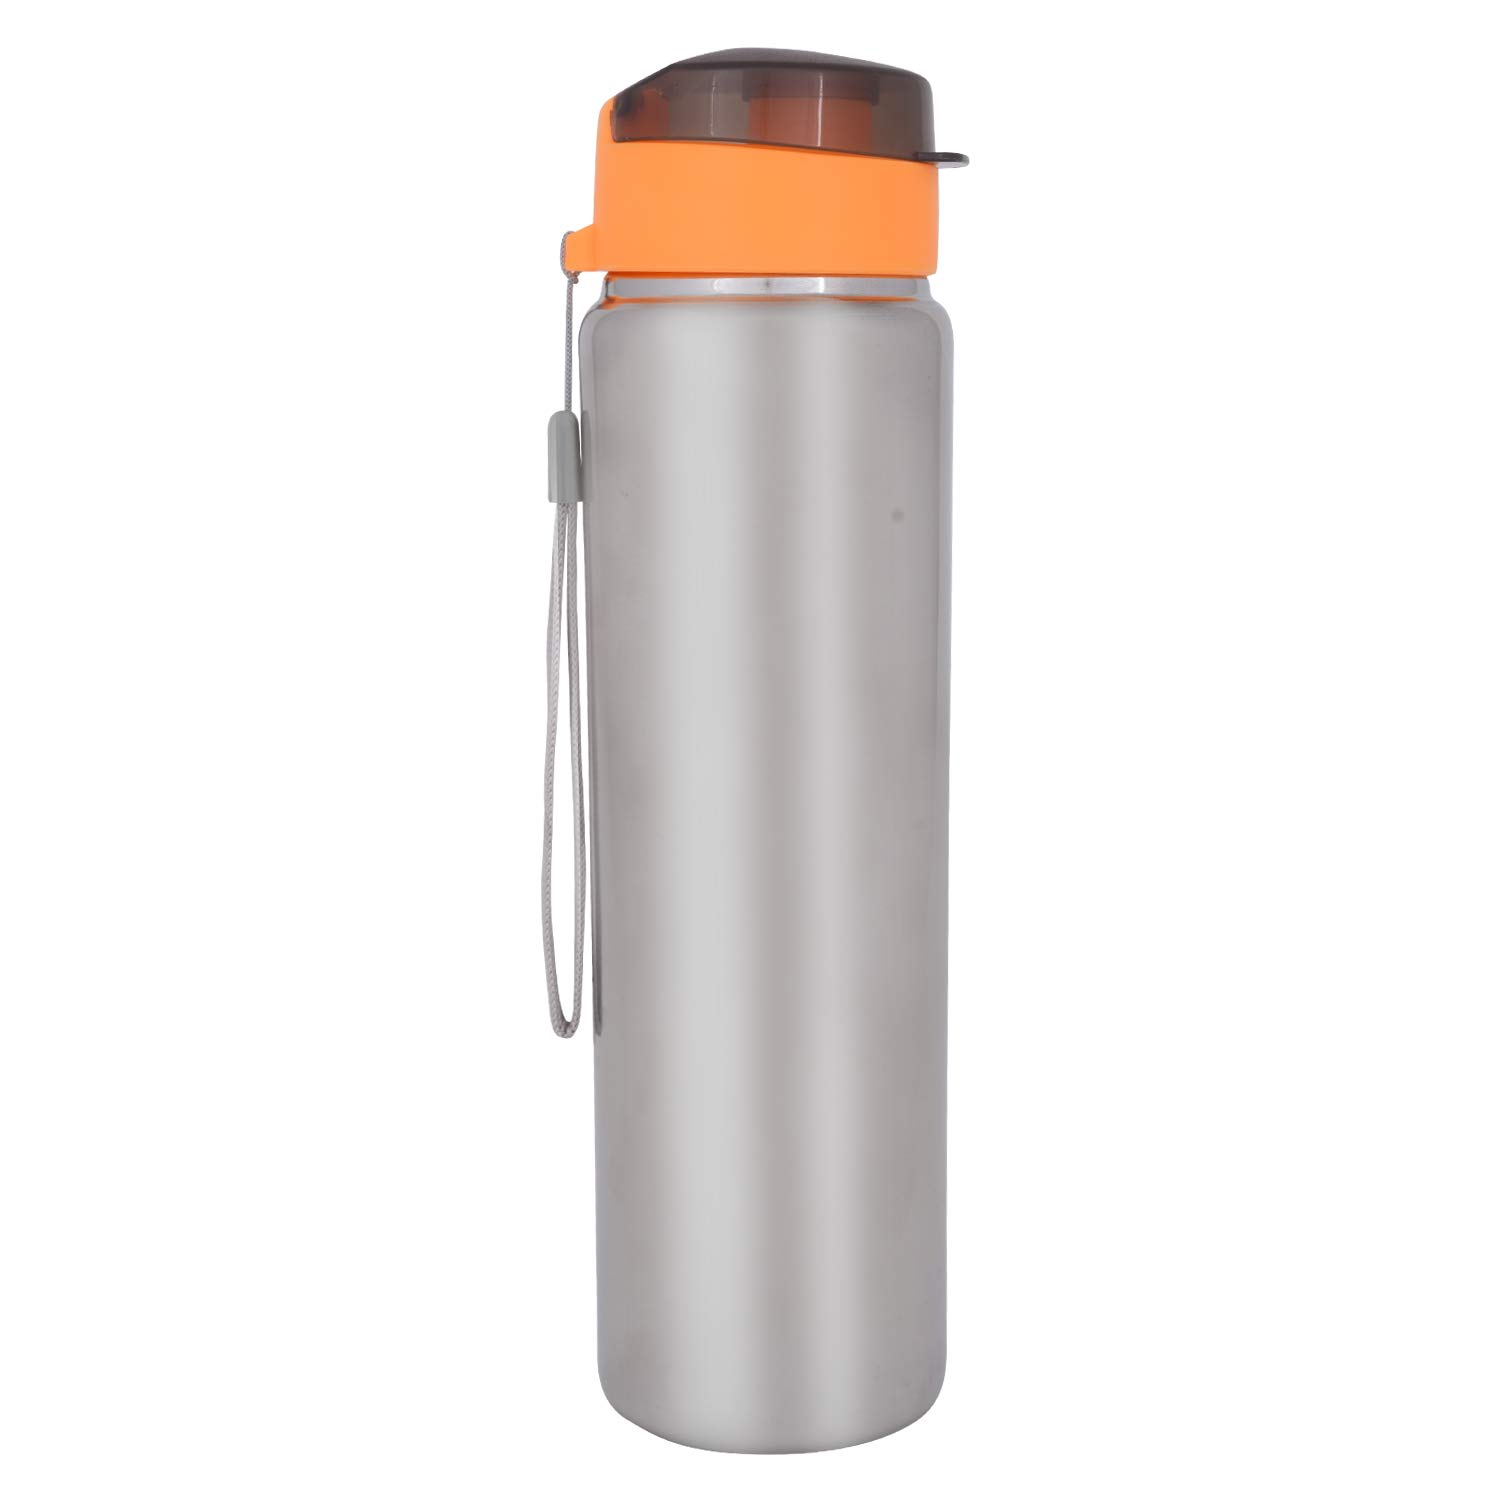 Apeiron Steel Water Bottle with Fruit Infuser (1L)